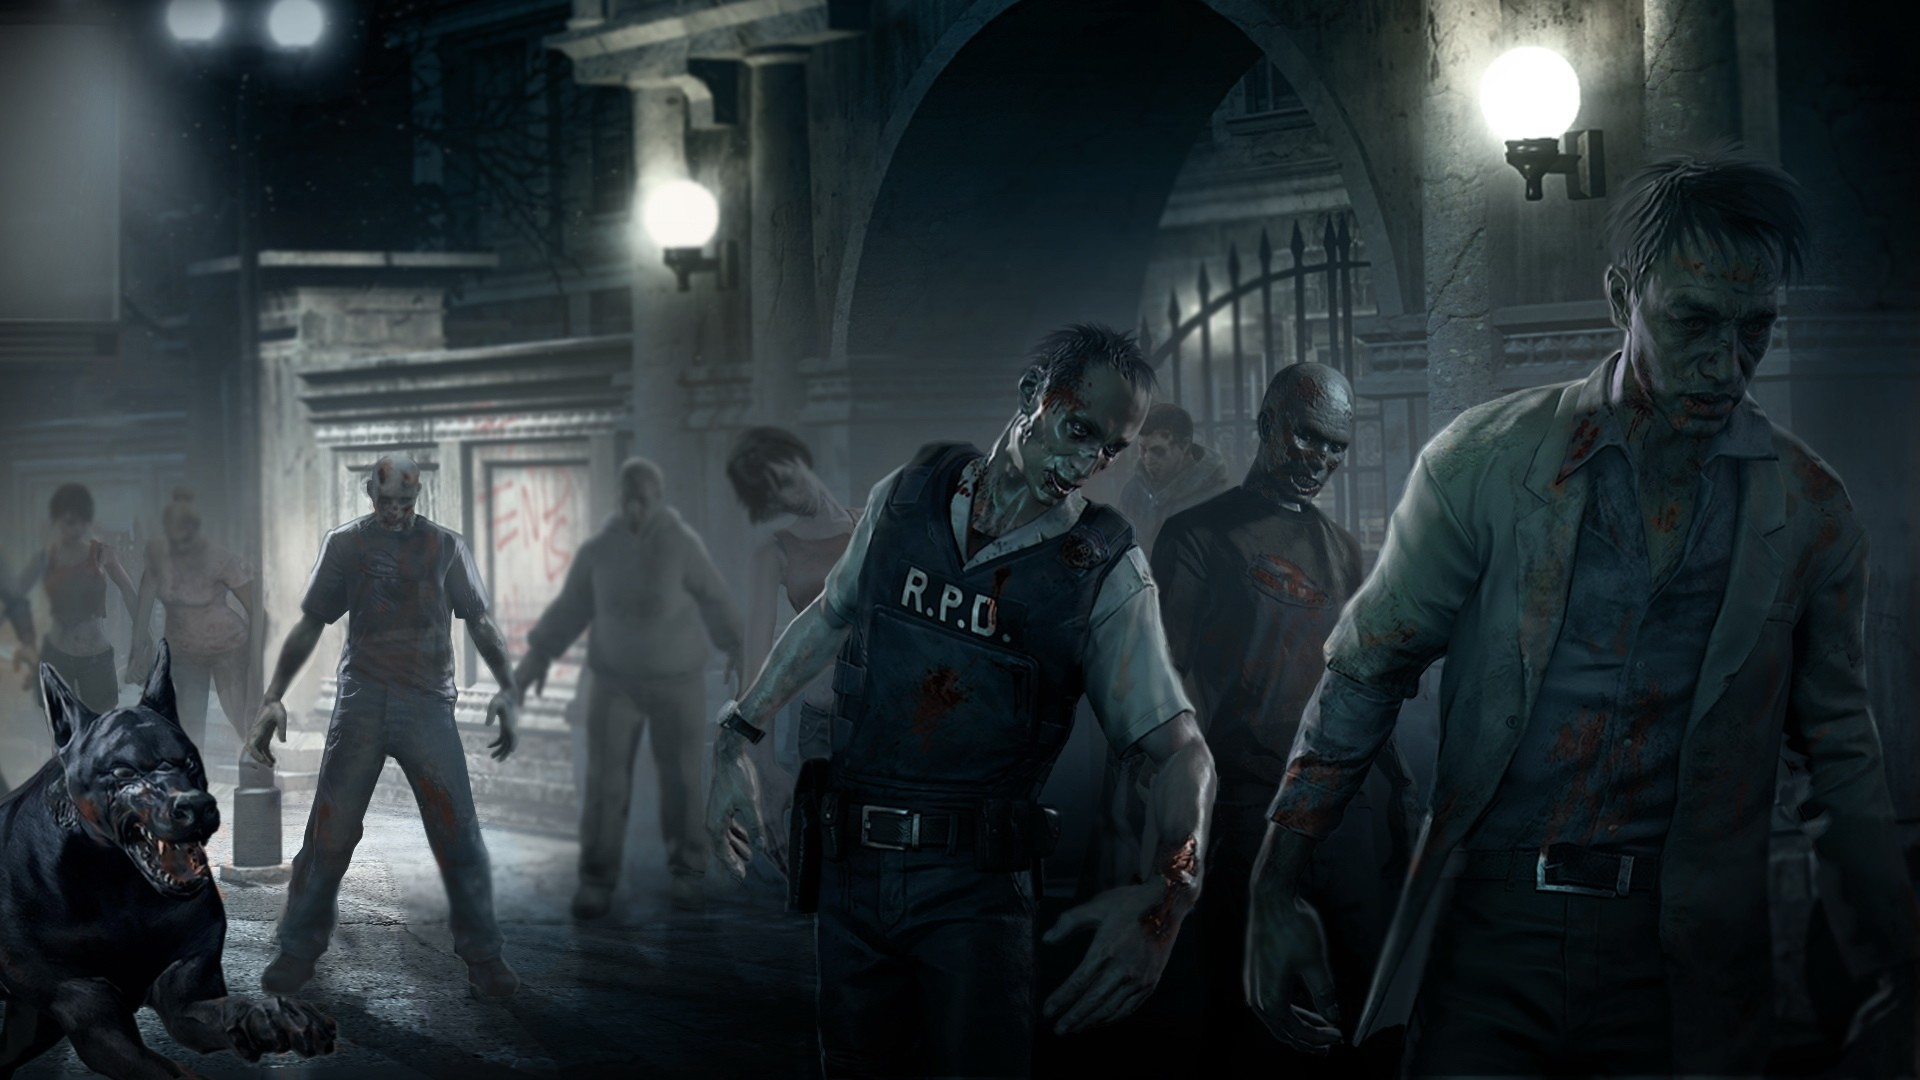 33 zombie backgrounds download free beautiful high resolution 1920x1080 it came out of dead island zombie selfie nice zombie wallpaper artwork download voltagebd Images